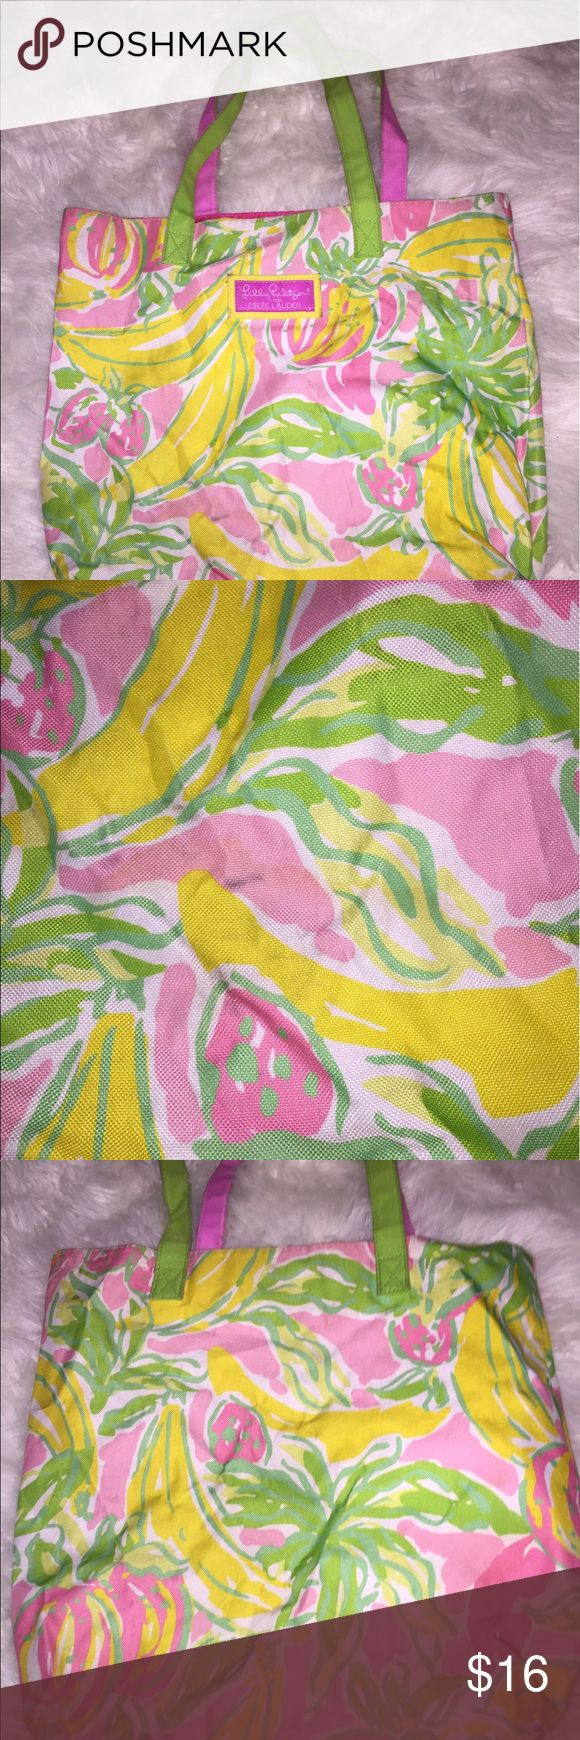 Lilly Pulitzer tote Has been used, wear shows above in photos. Can be used for the beach or just about anything! Light pink, yellows, light greens, darks pinks, deff more of a summer tote. Lilly Pulitzer Bags Totes